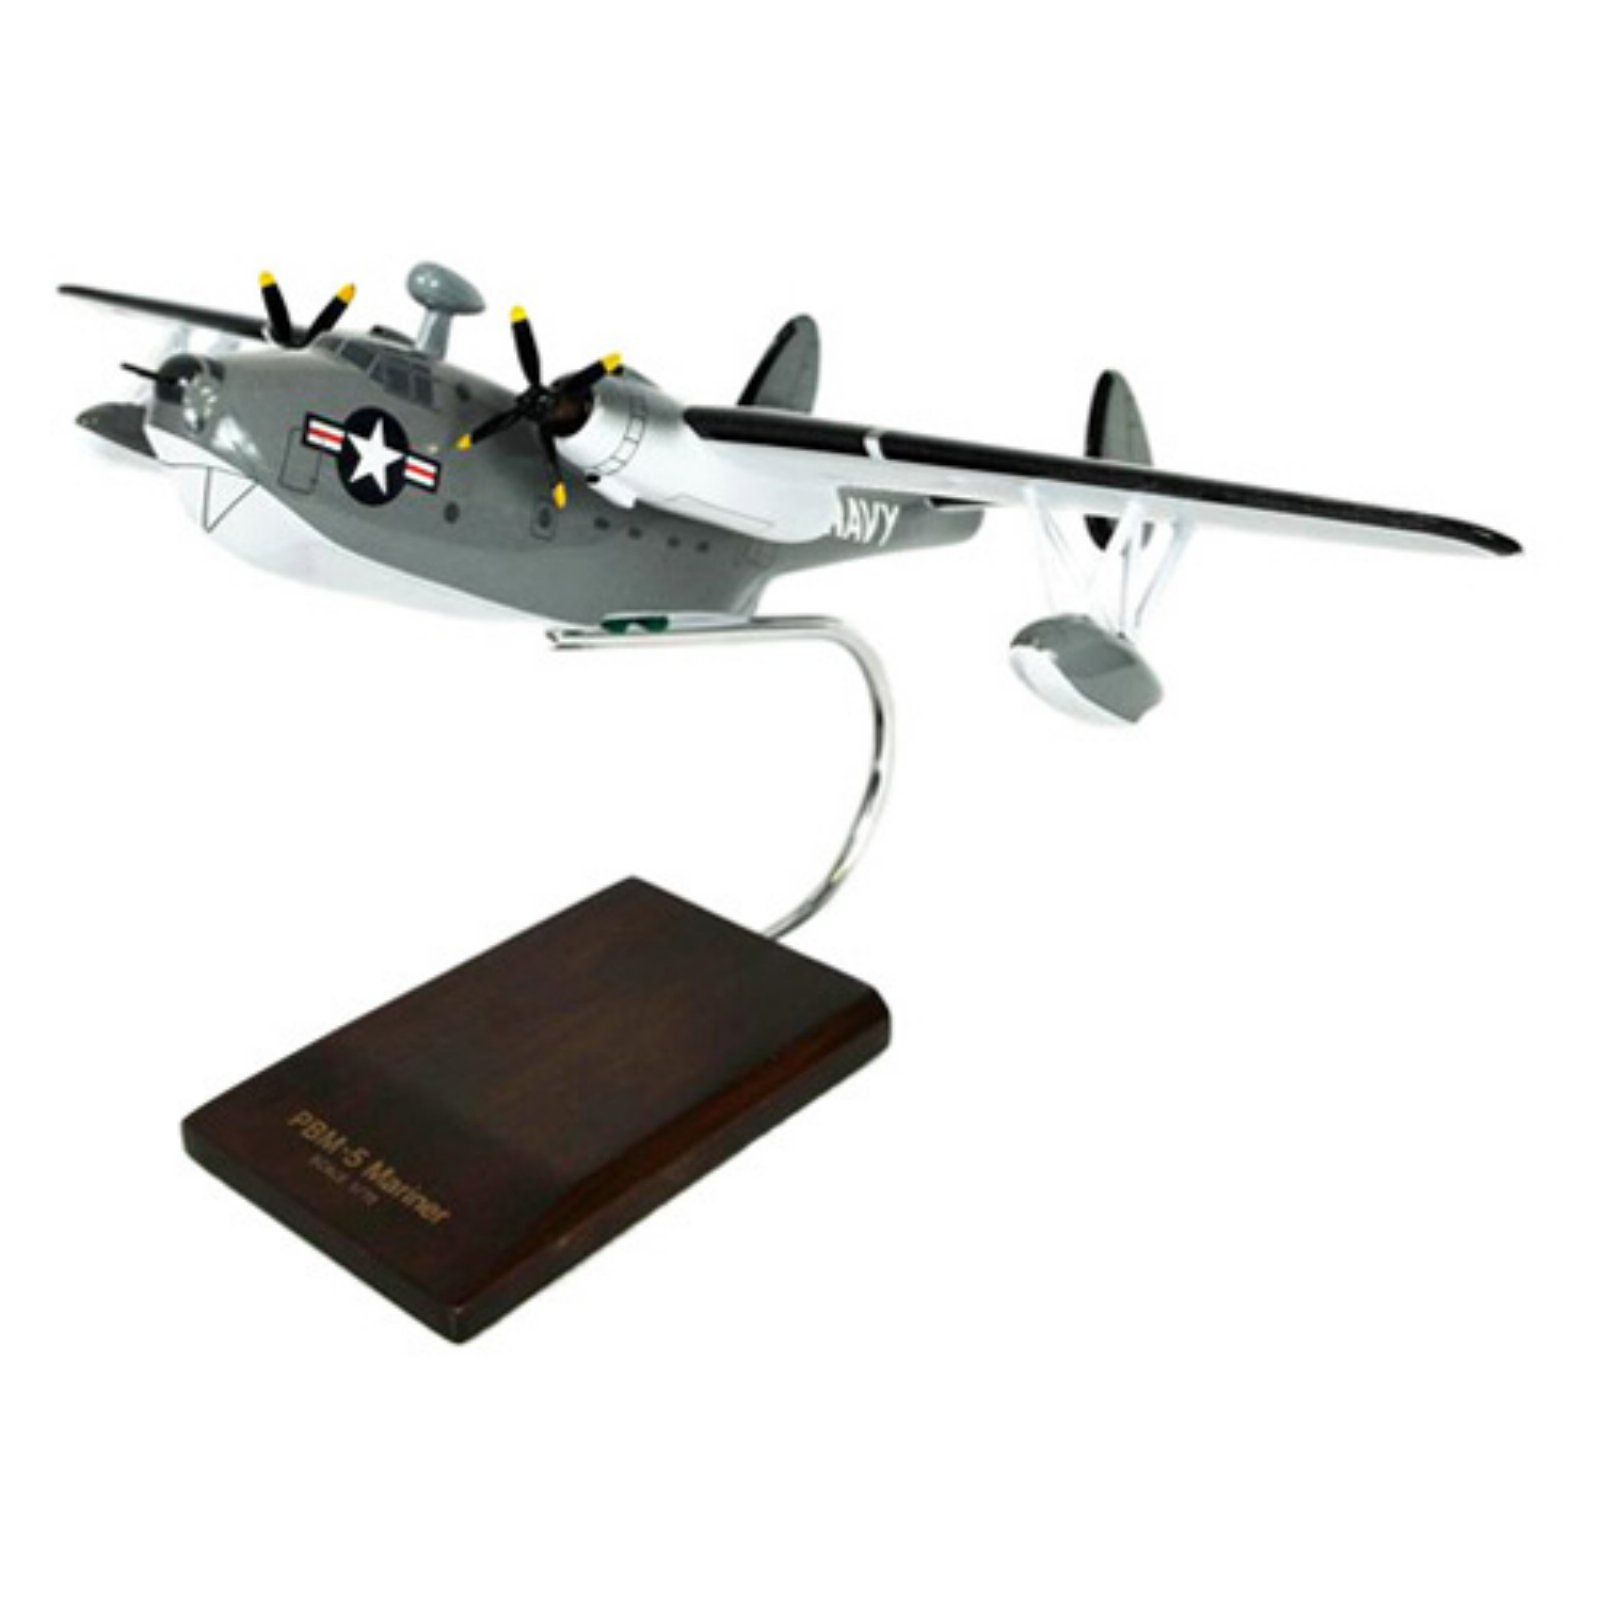 Daron Worldwide PBM-5 Mariner Model Airplane by Toys and Models Corporation